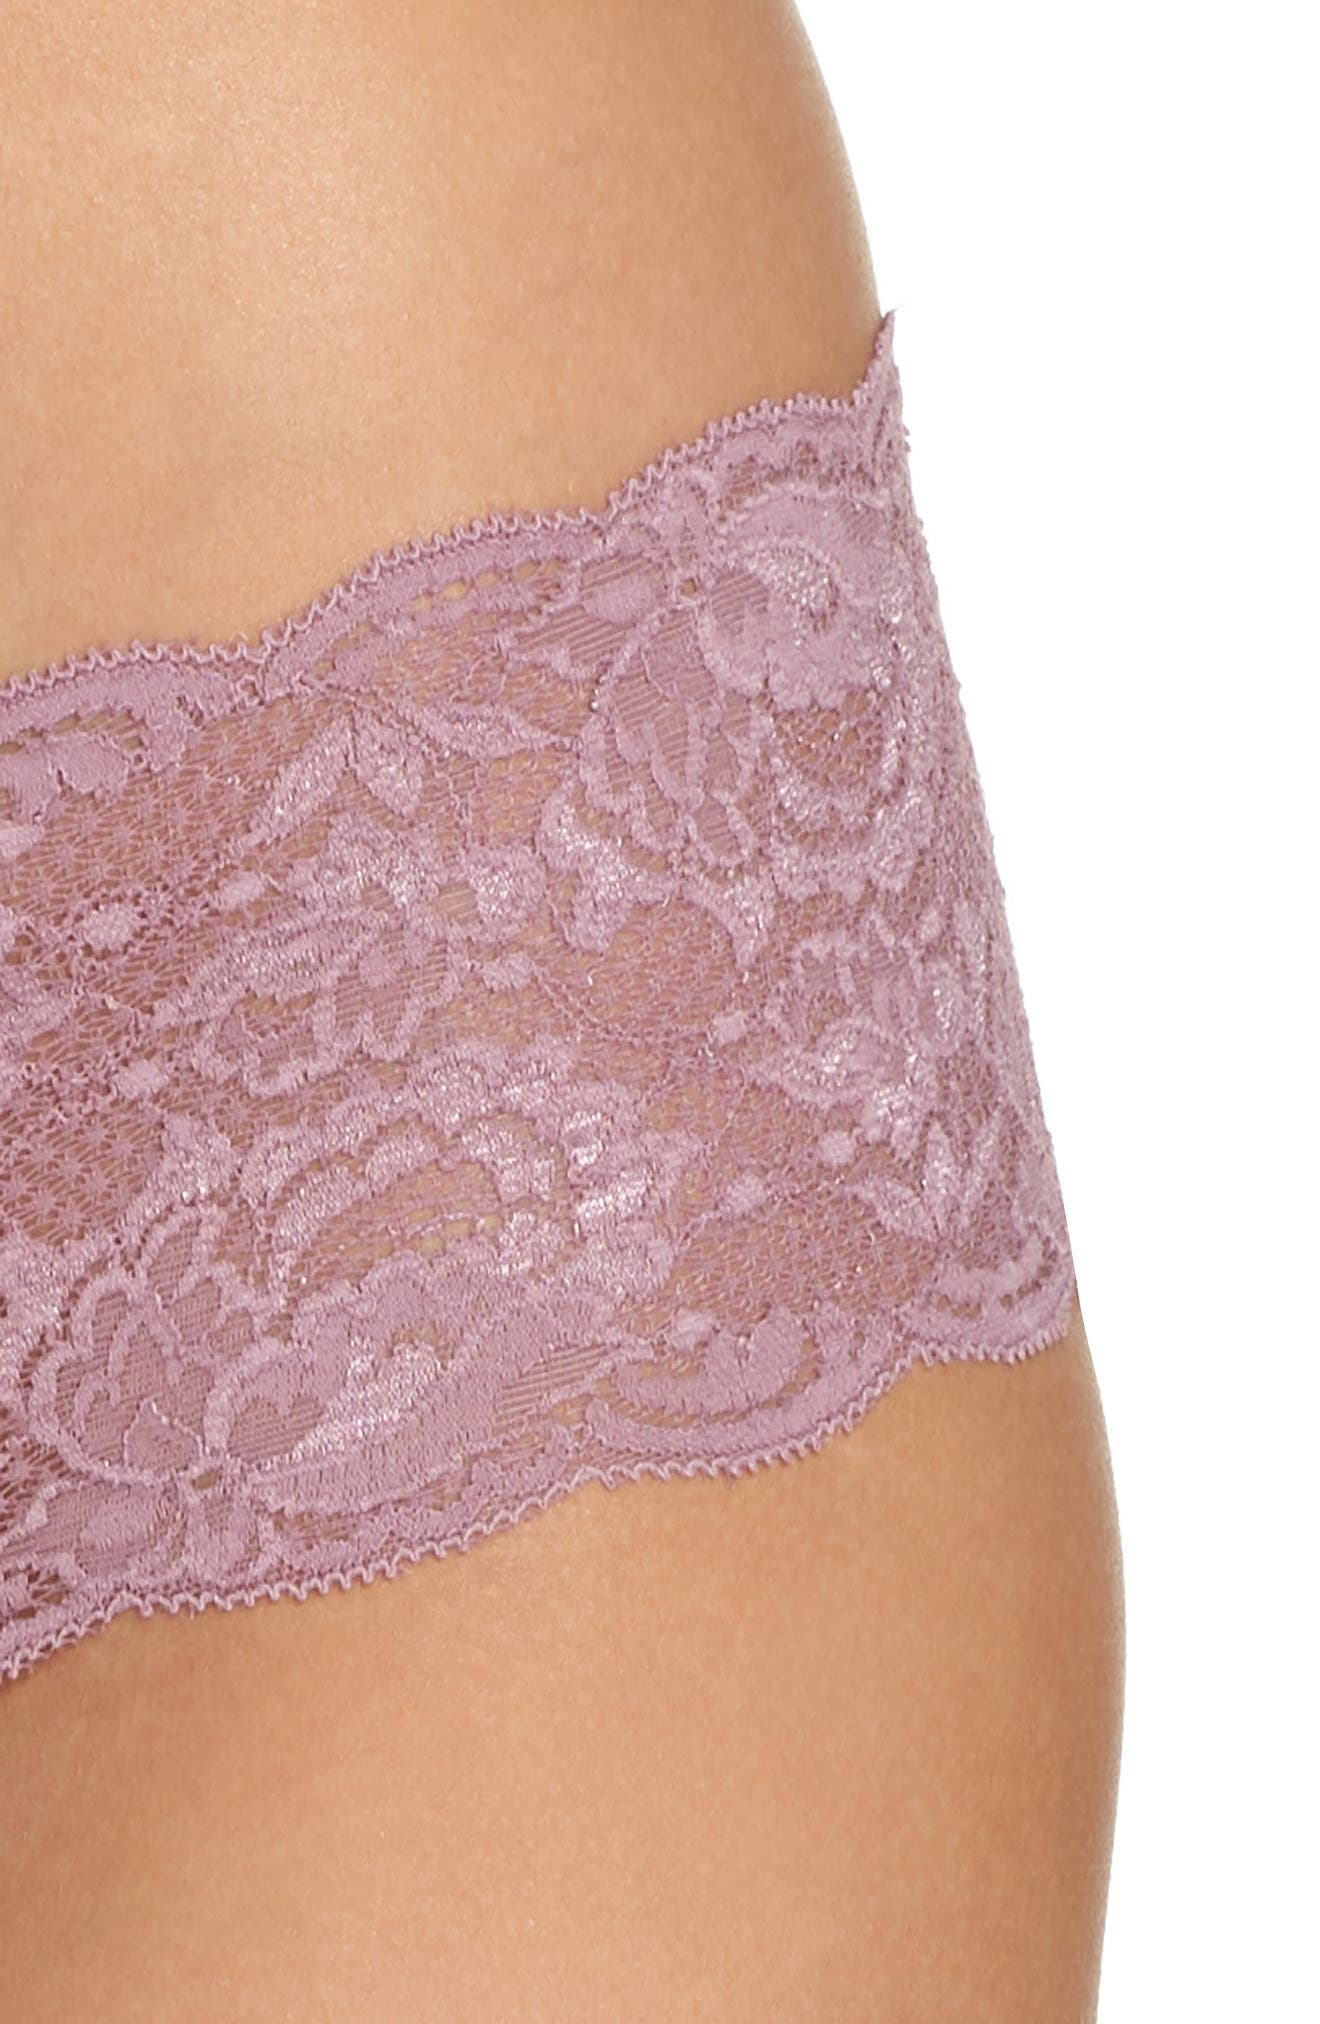 'Never Say Never' Hipster Briefs,                             Alternate thumbnail 3, color,                             Grape